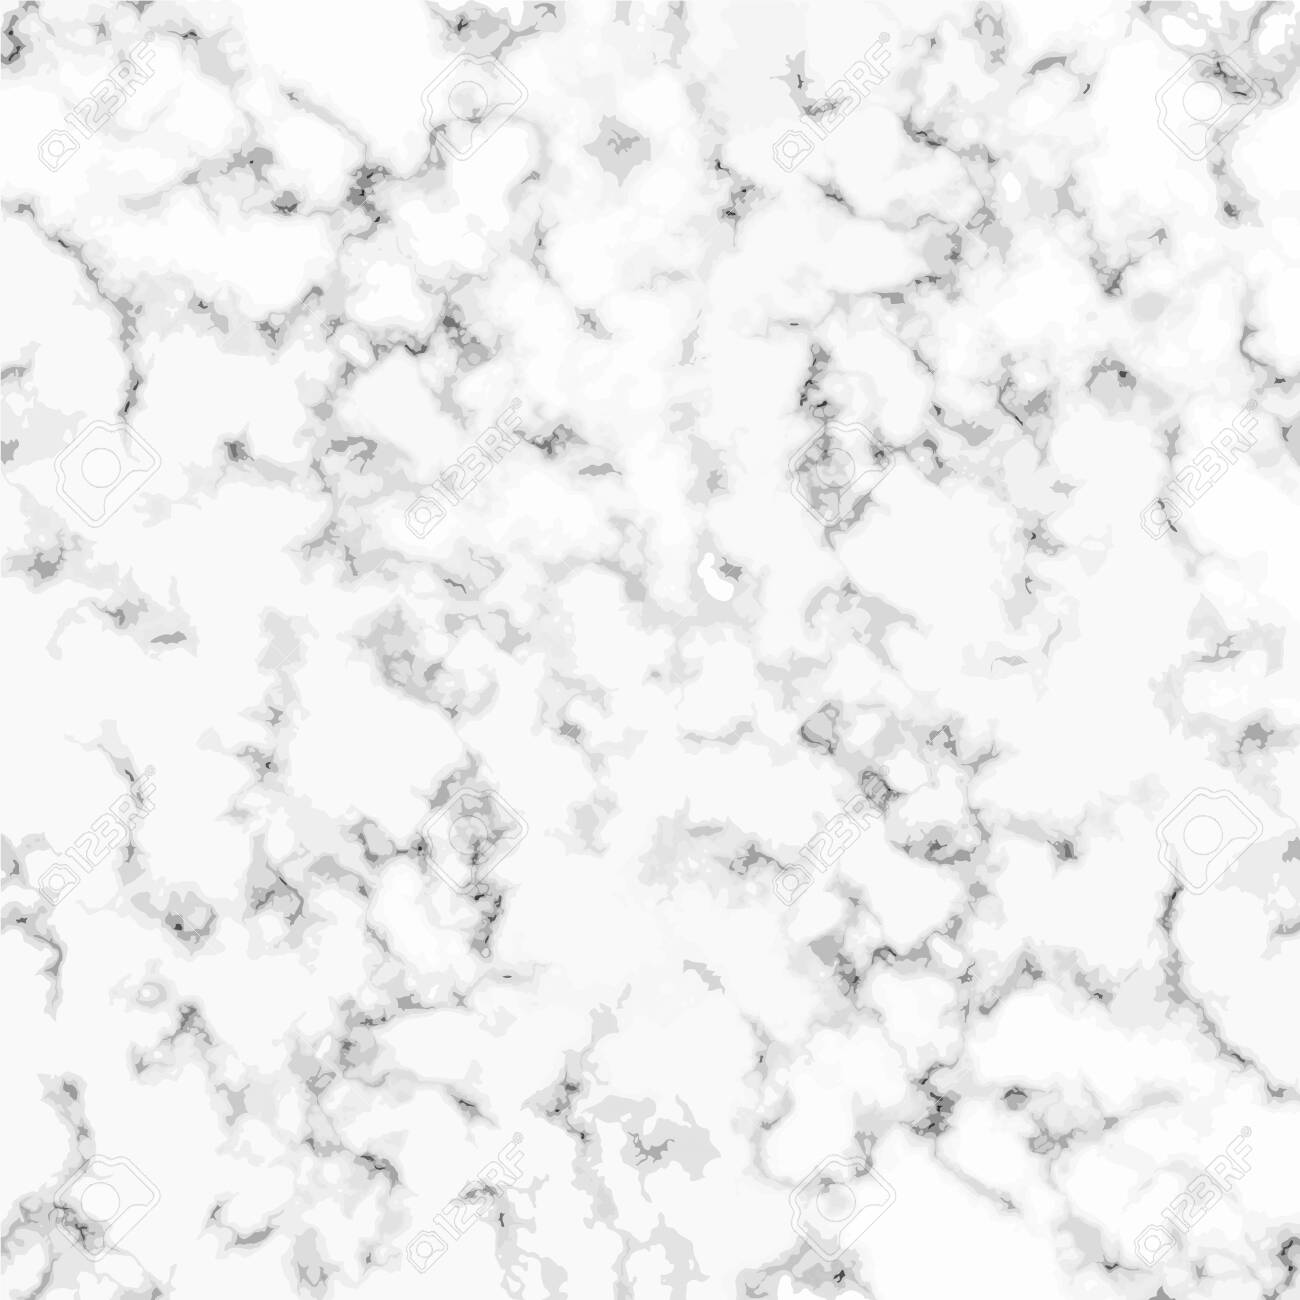 Abstract Texture Of Black And White Marble Seamless Pattern Royalty Free Cliparts Vectors And Stock Illustration Image 147424714